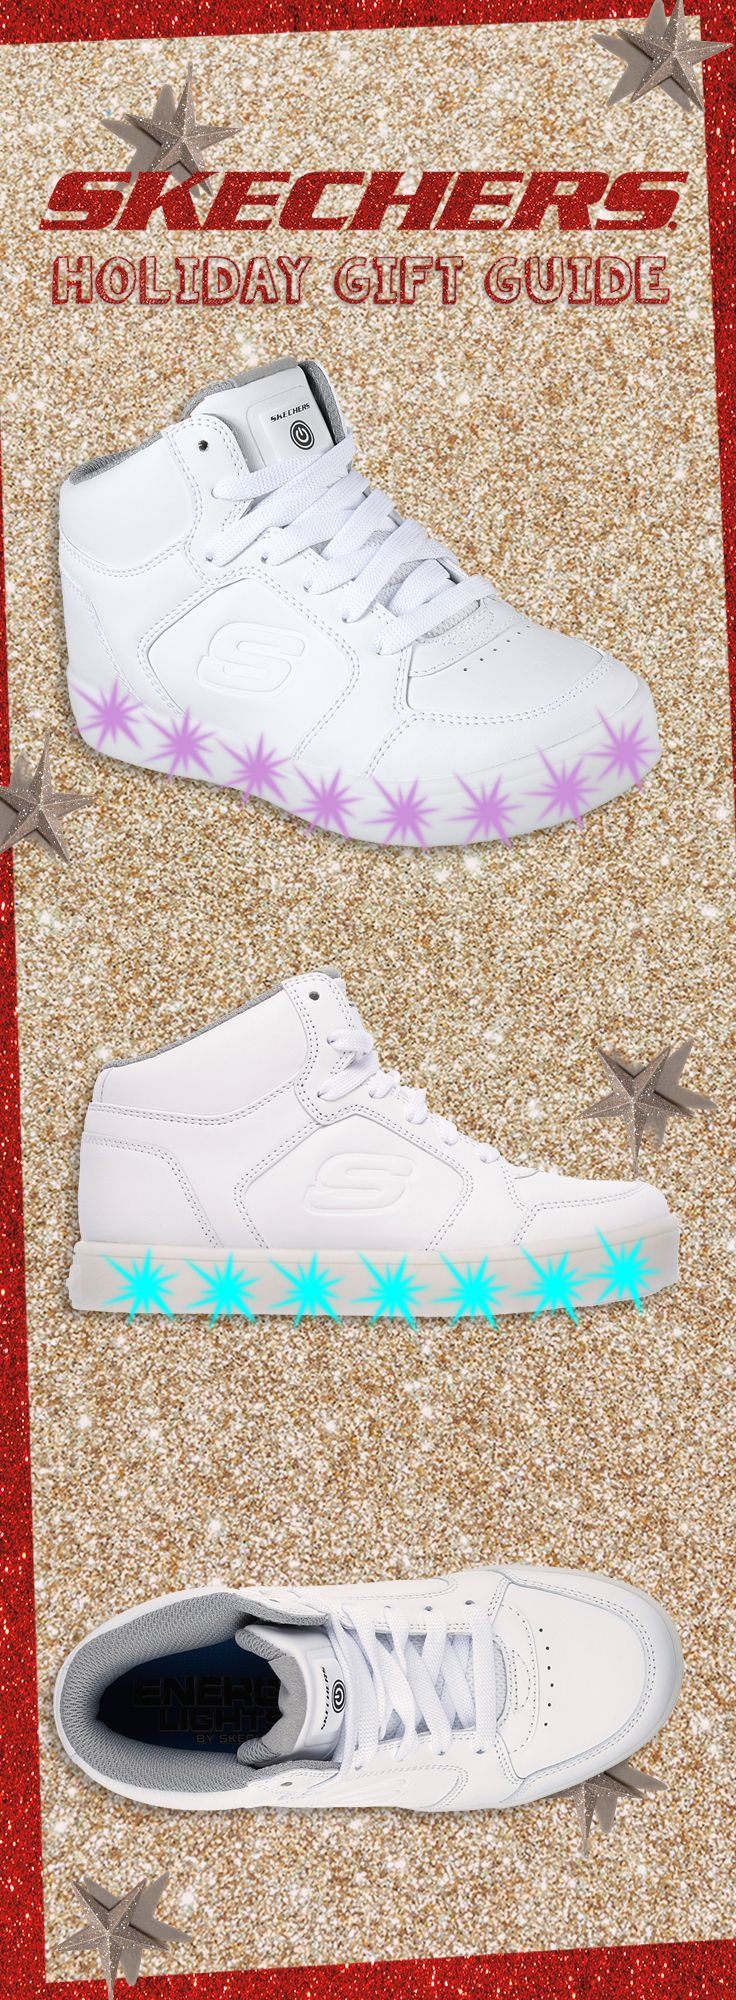 The future of lightup footwear is home for the holidays. #SKECHERSkids